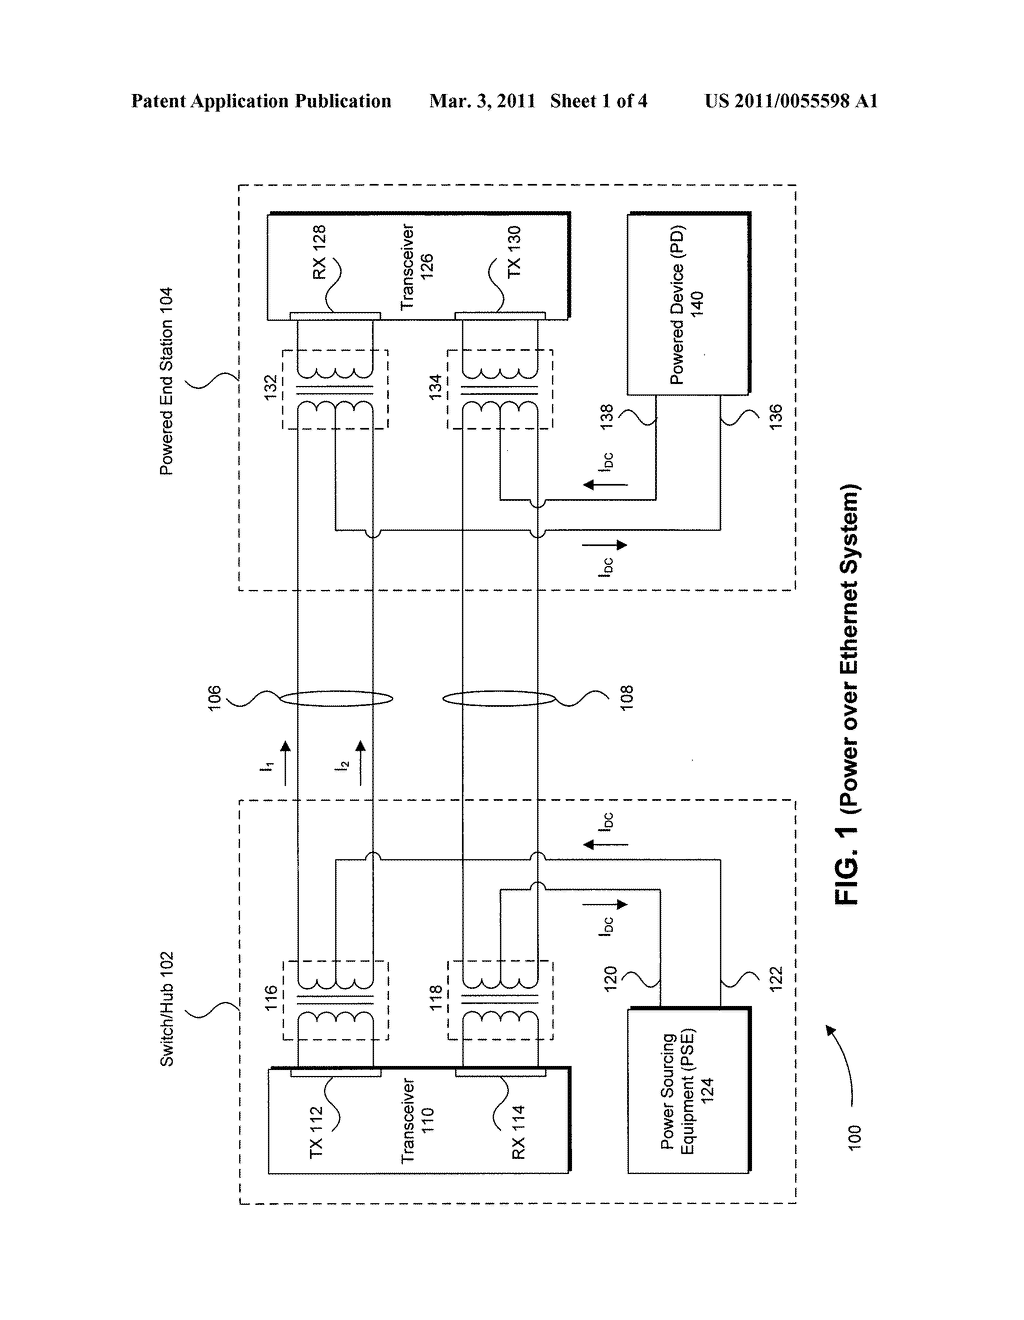 Ac Disconnect Diagram Wiring Will Be A Thing Of Power Over Ethernet Devices Schematic Rh Patentsencyclopedia Com Service